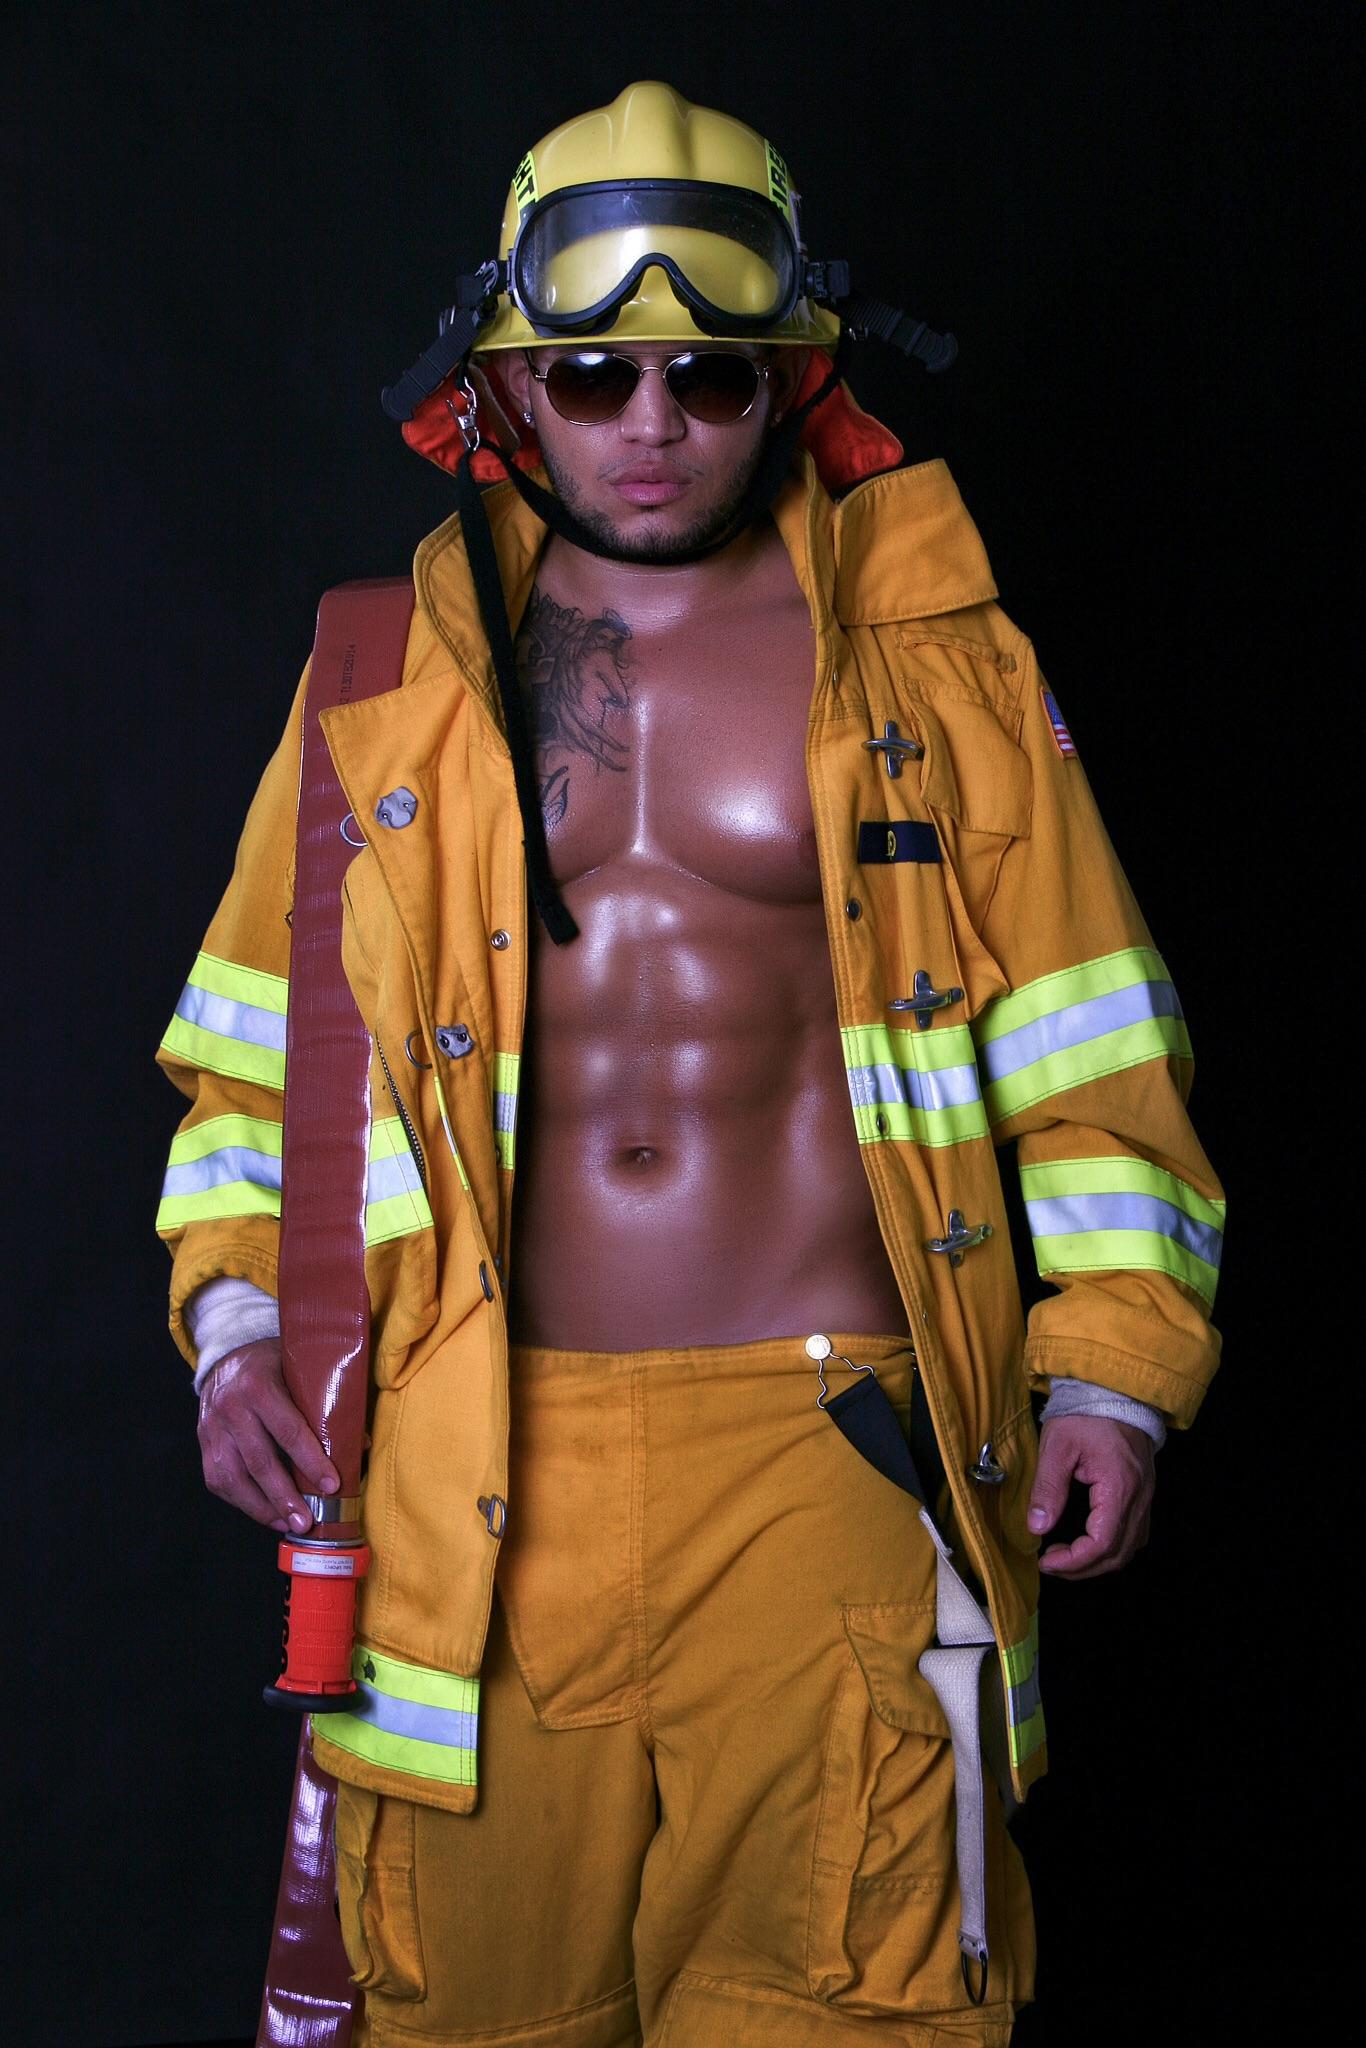 Hottest Firefighter in CA